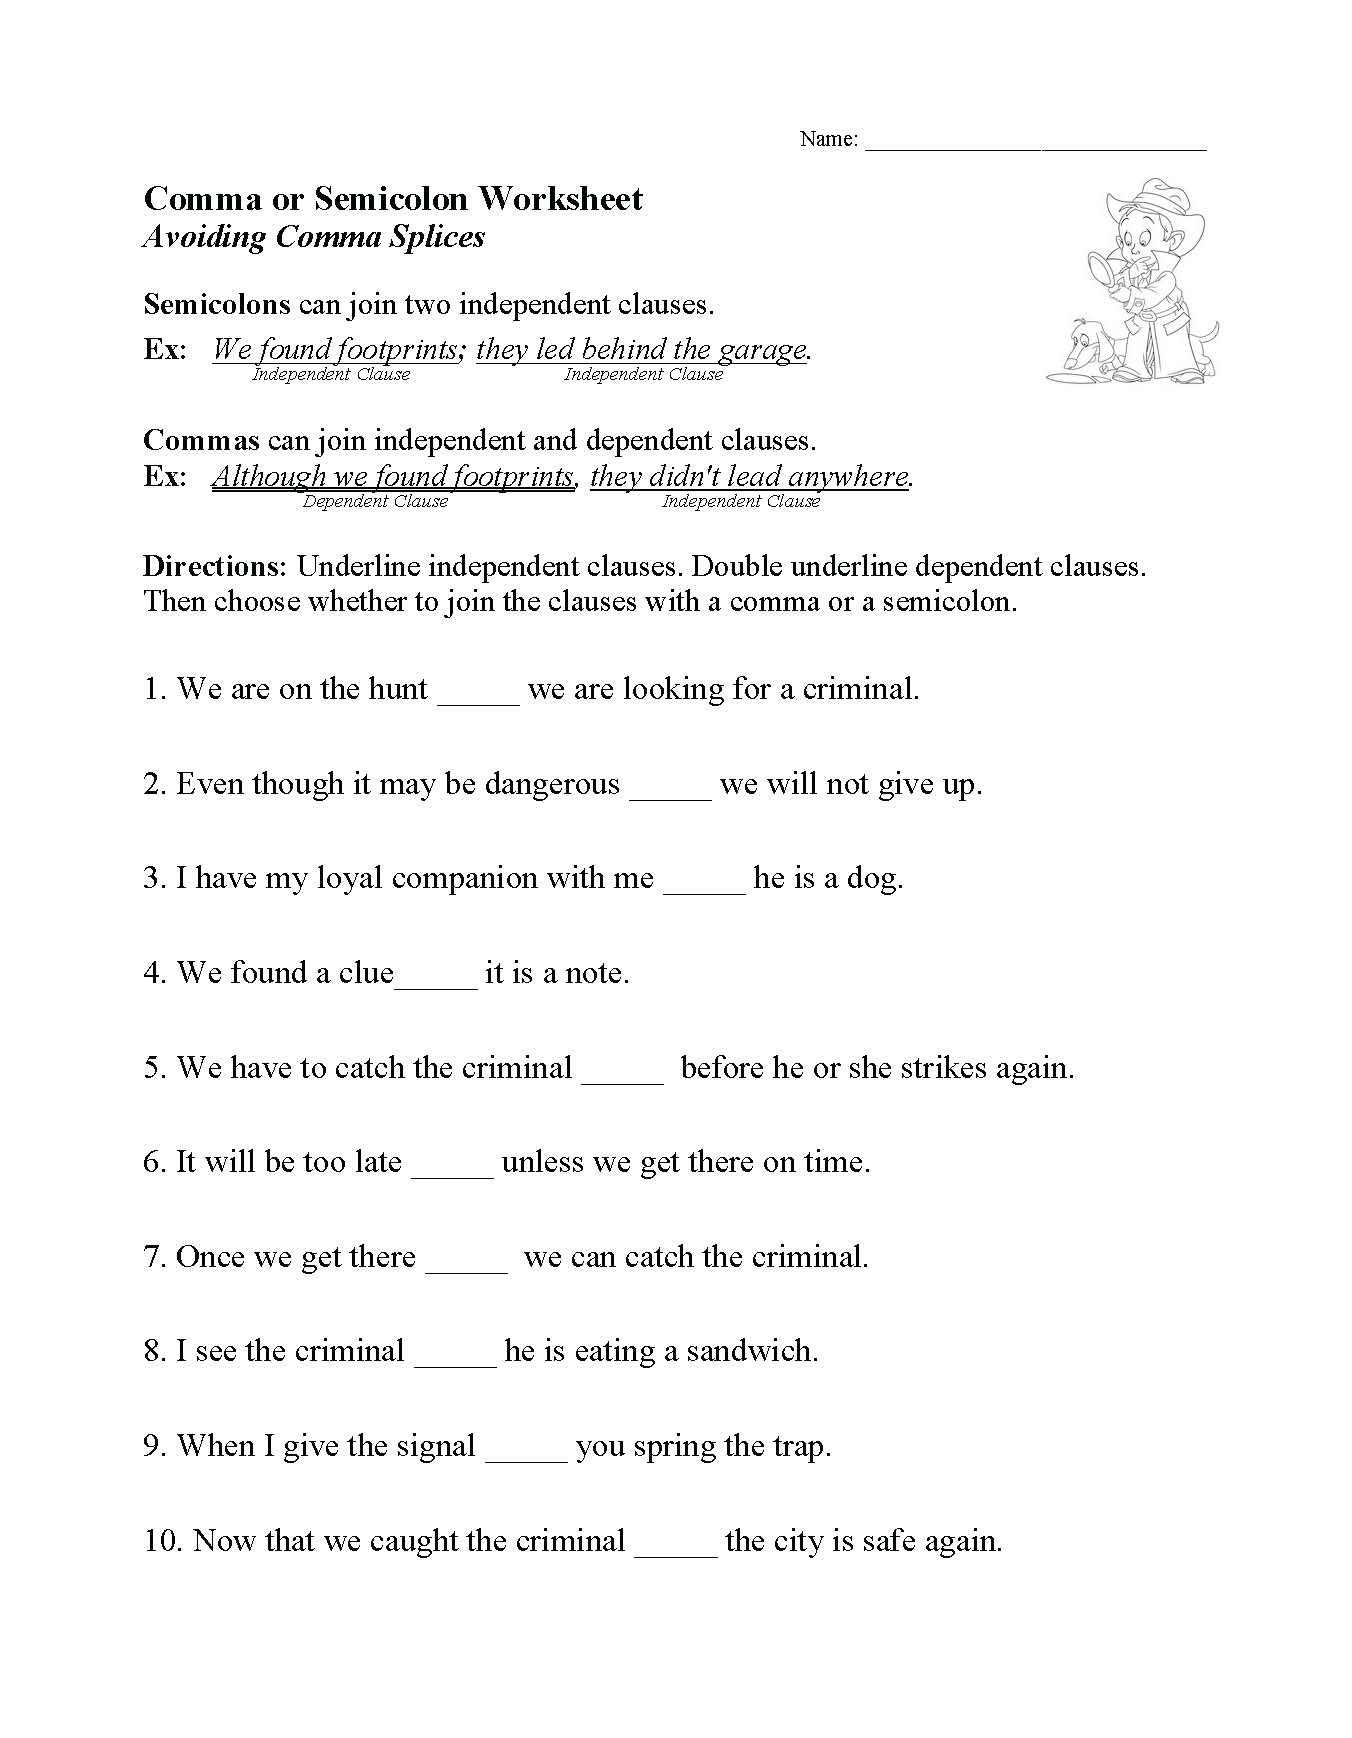 This is a preview image of our Comma or Semicolon Worksheet. Click on it to enlarge this image and view the source file.